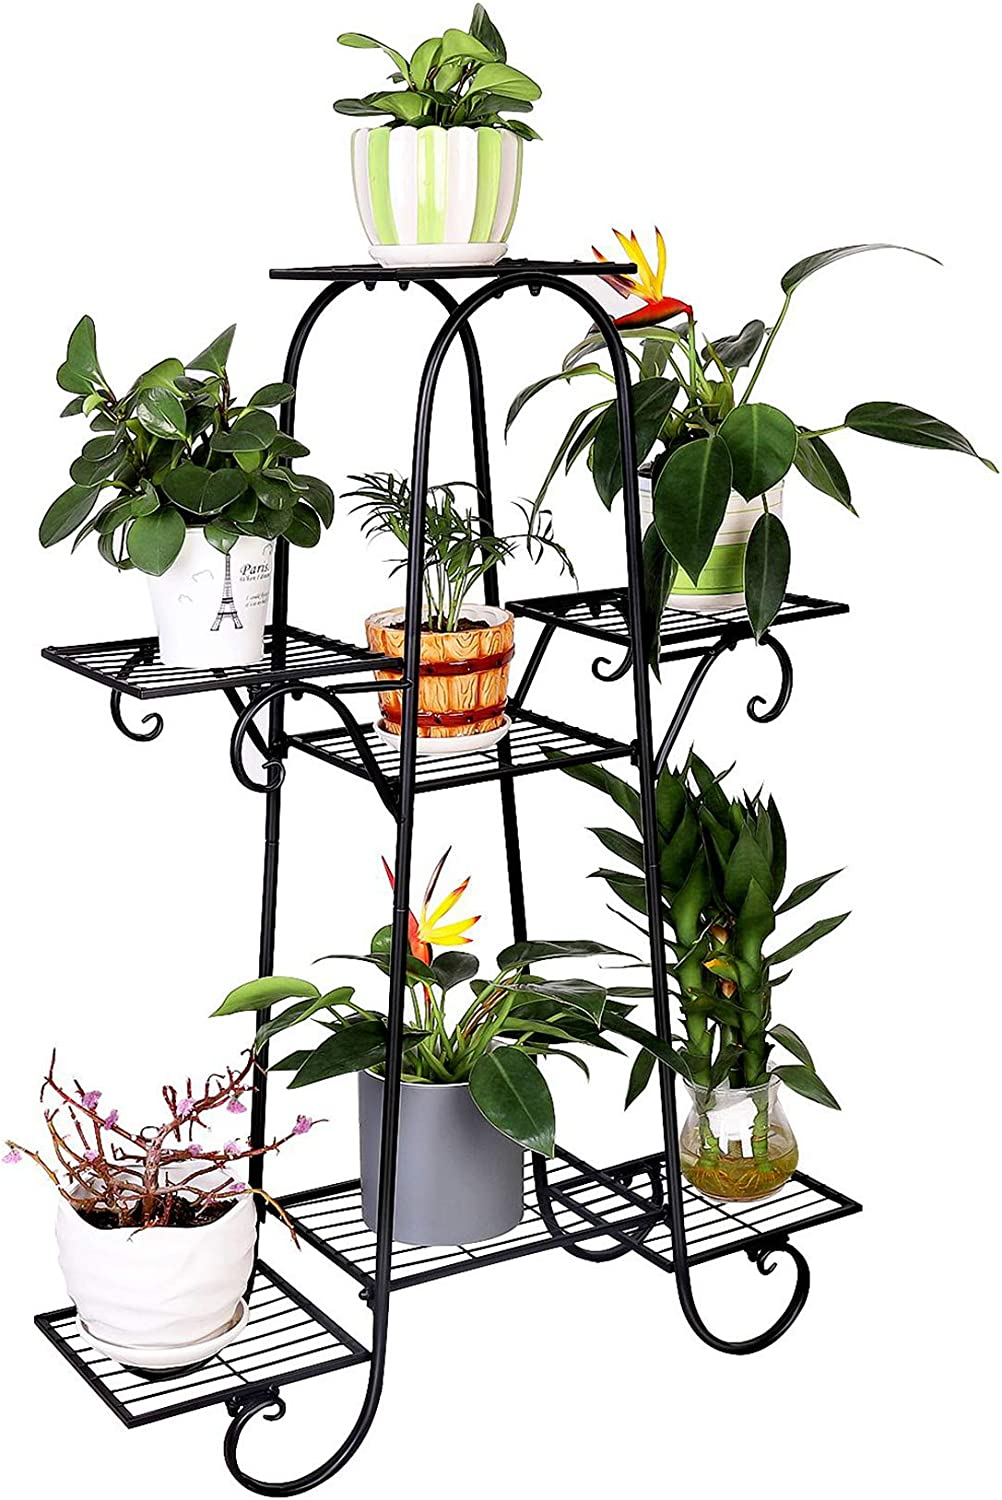 unho 7 Tier Plant Stands Indoor Metal Plant Shelf Stand Outdoor Multilayer Potted Planters Display Rack Patio Garden, Size: 66 x 22 x 102cm